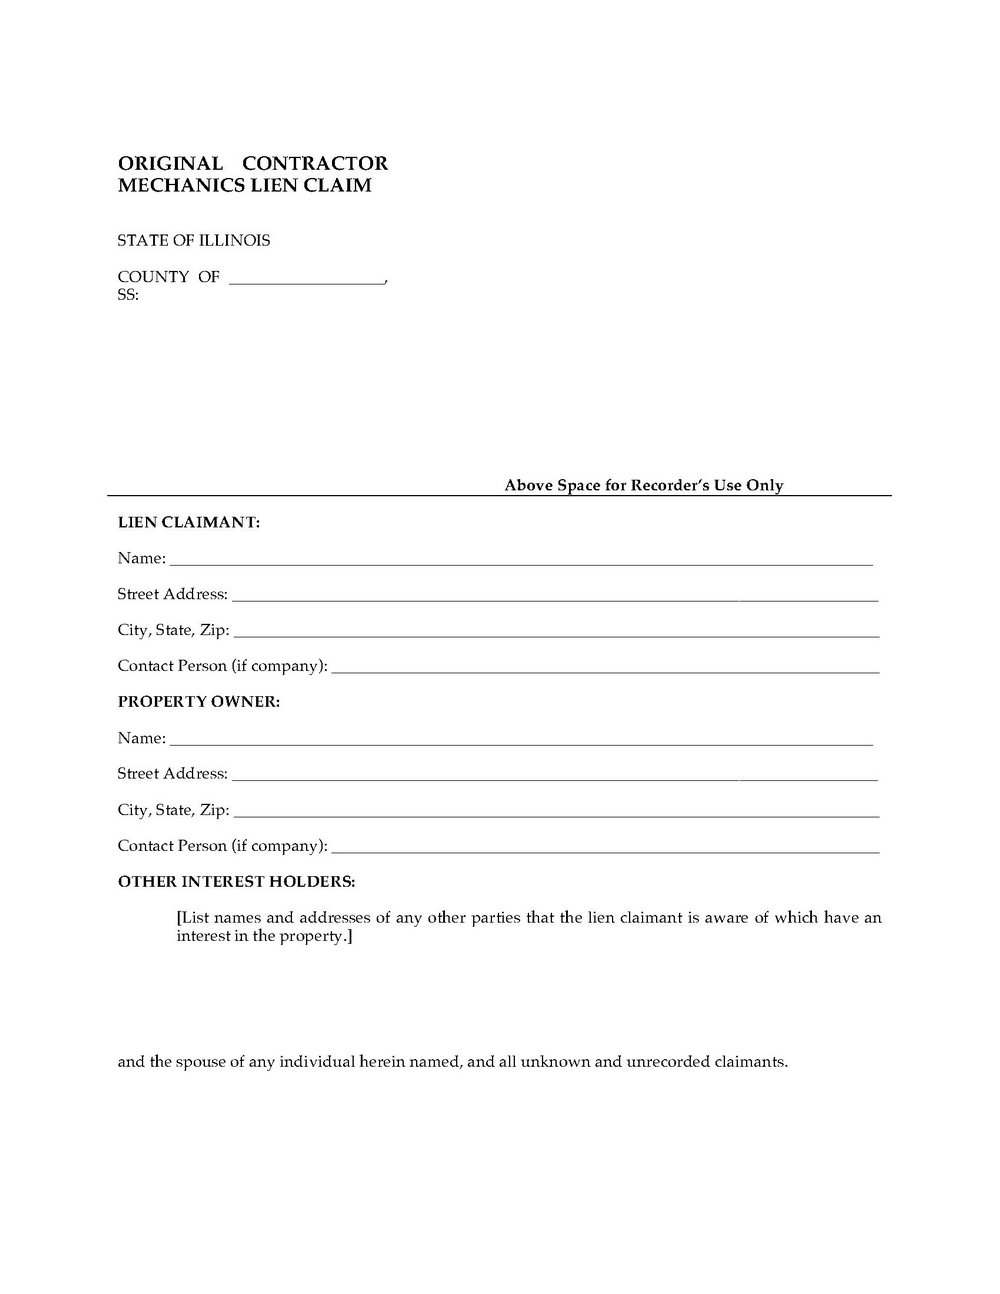 Mechanics Lien Form Pdf